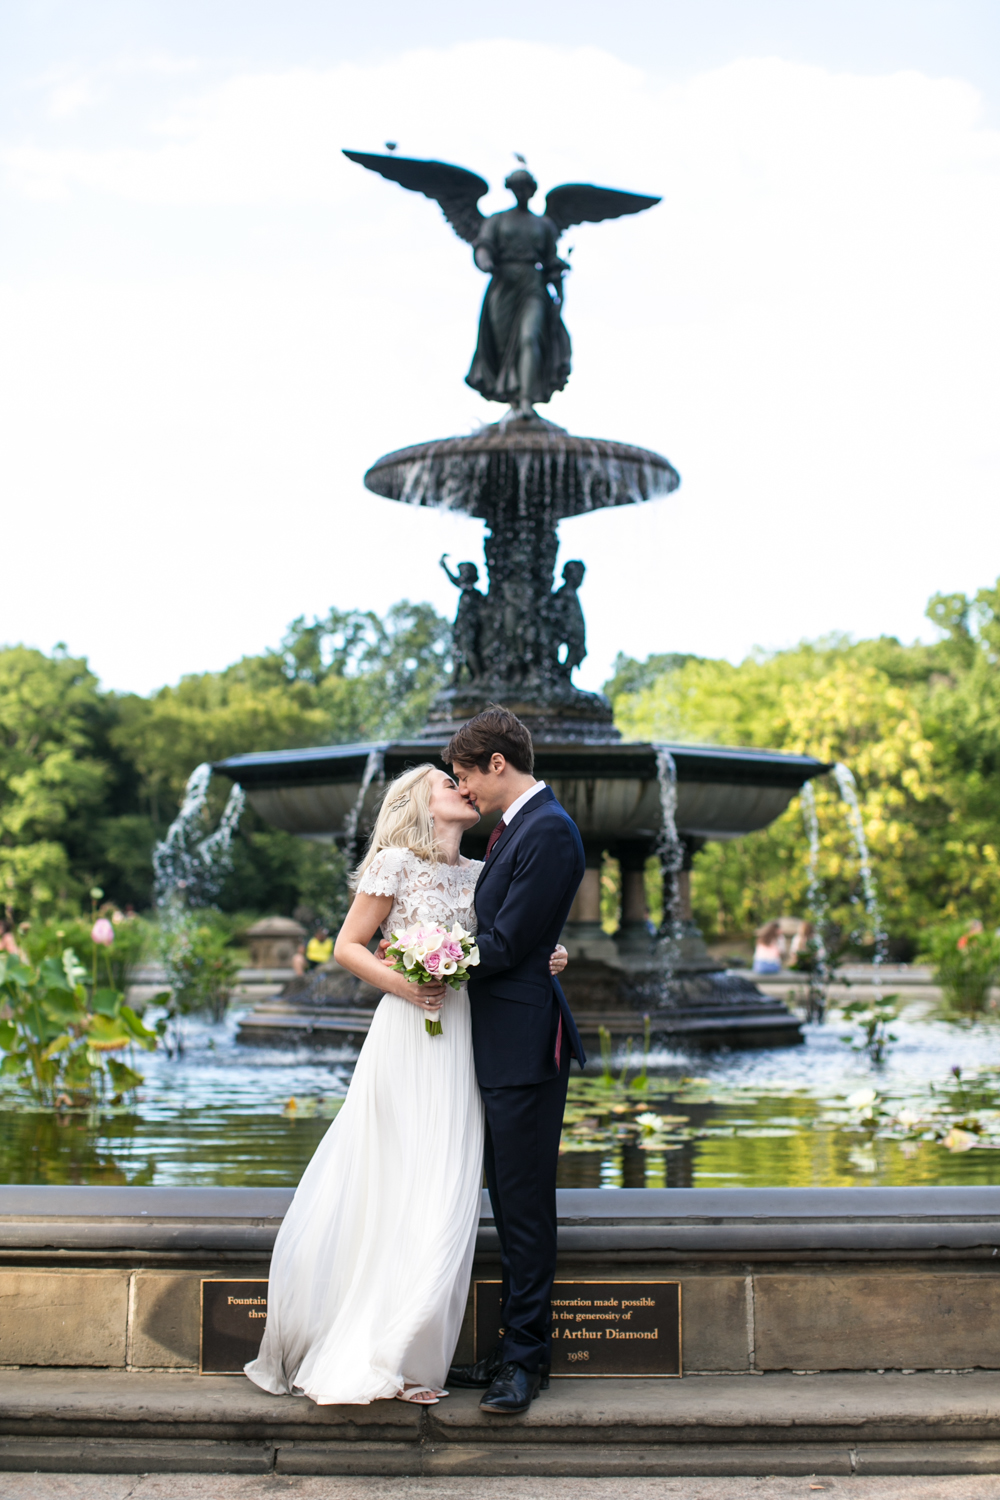 Central Park Intimate Wedding from Amber Marlow